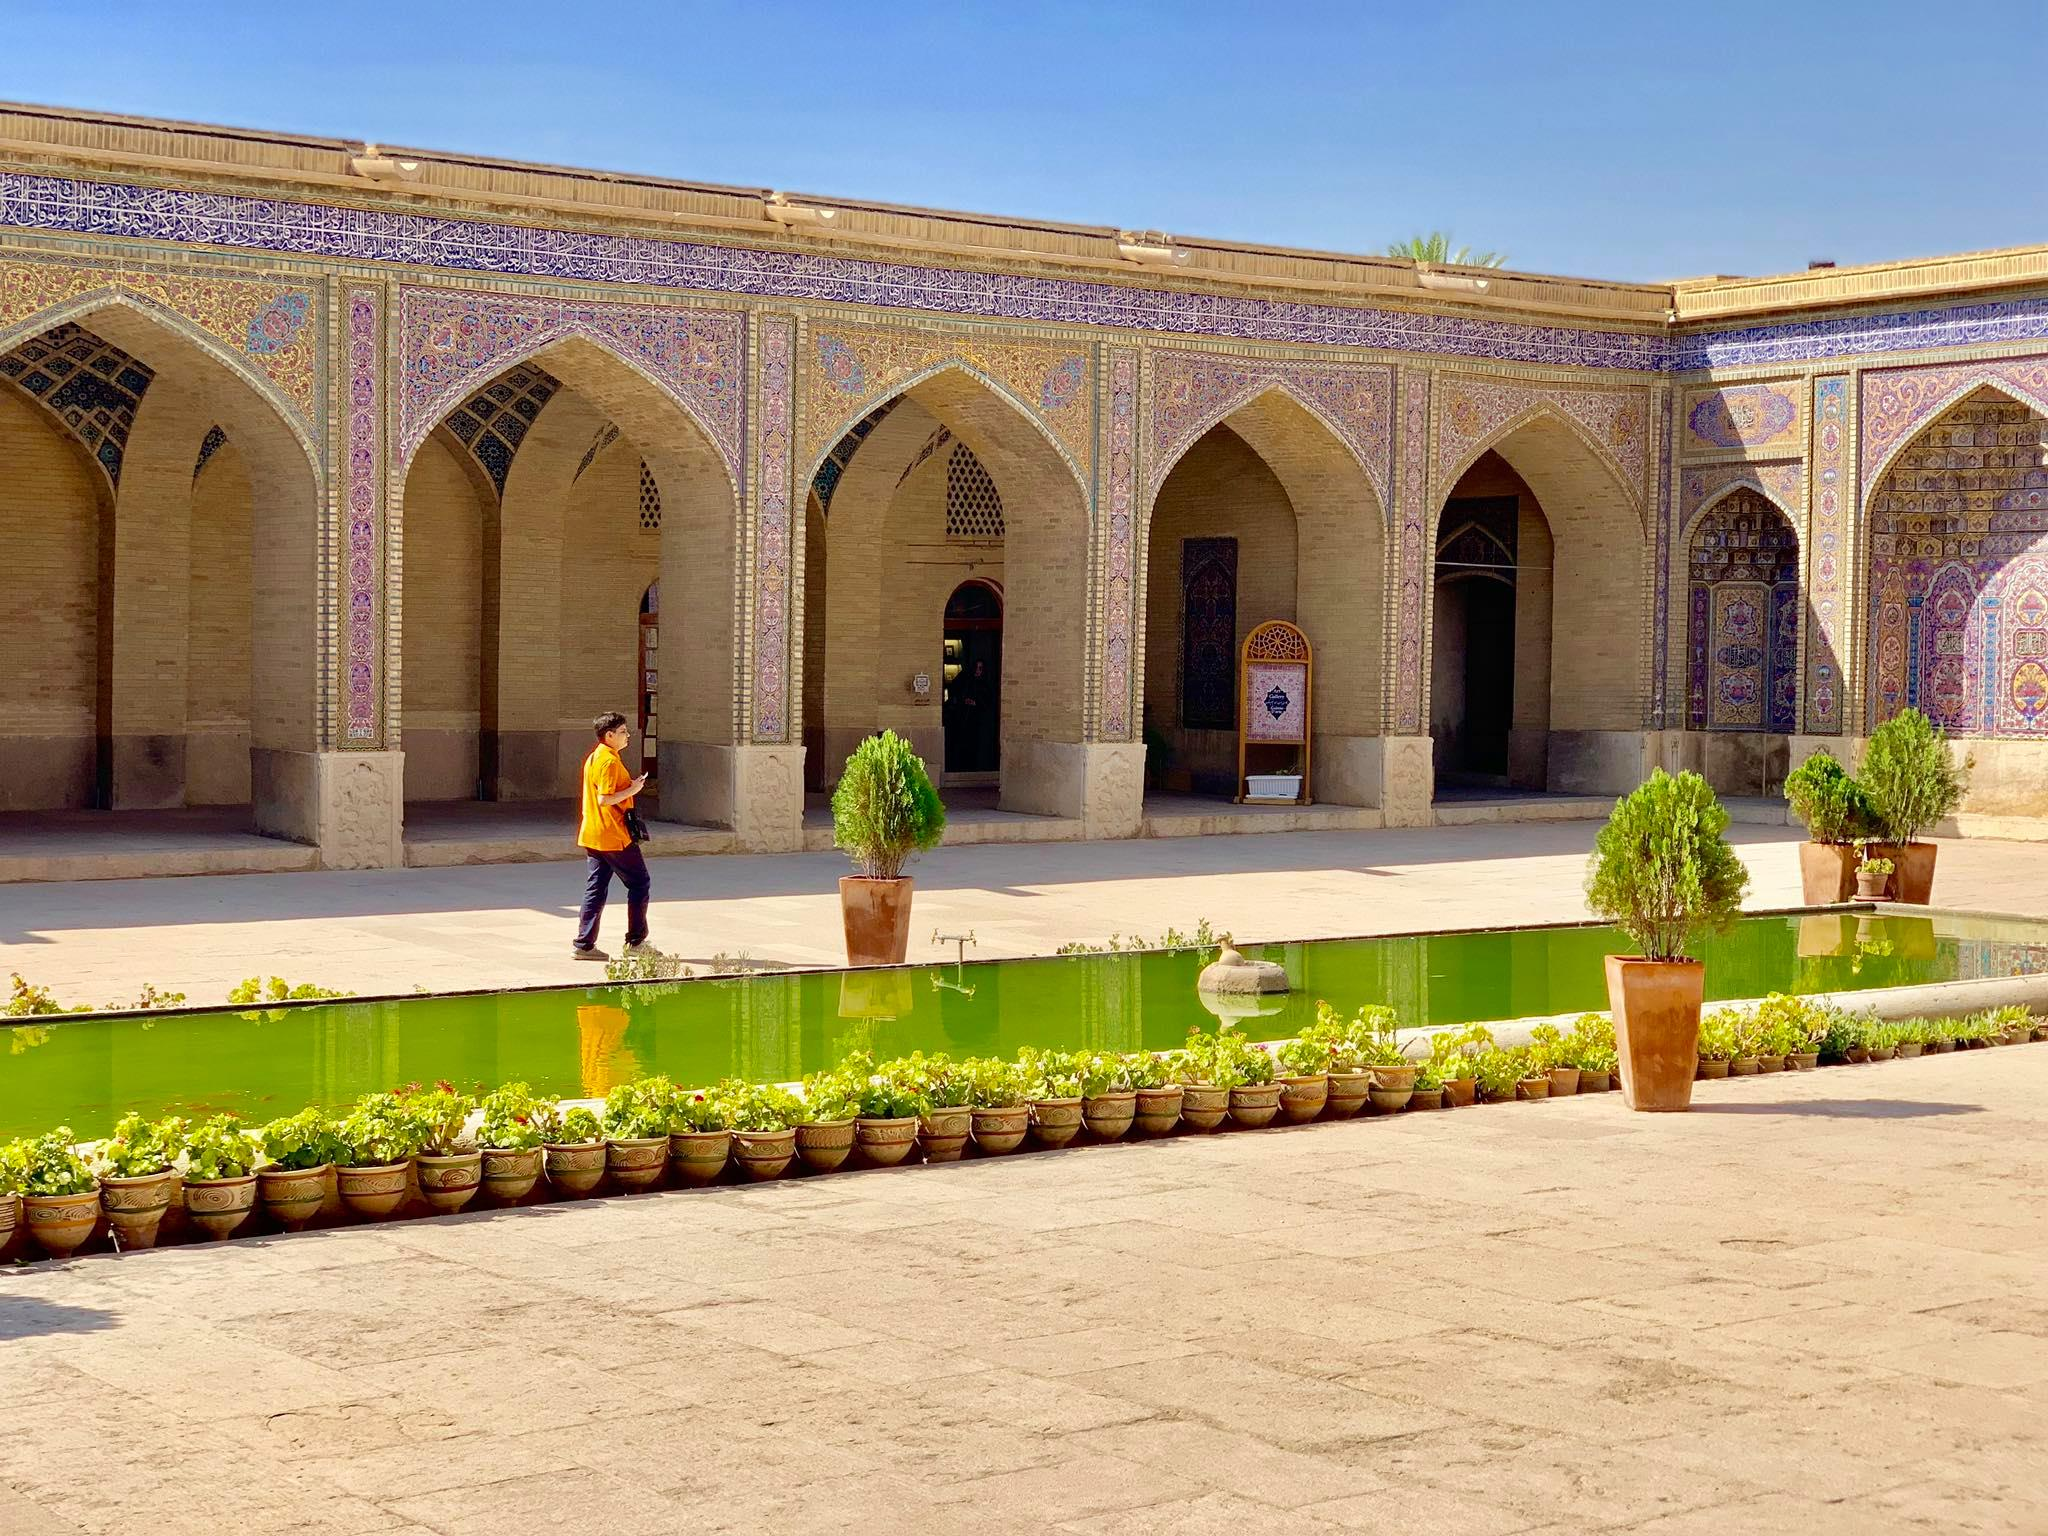 Kach Solo Travels in 2019 Full day tour of Shiraz6.jpg